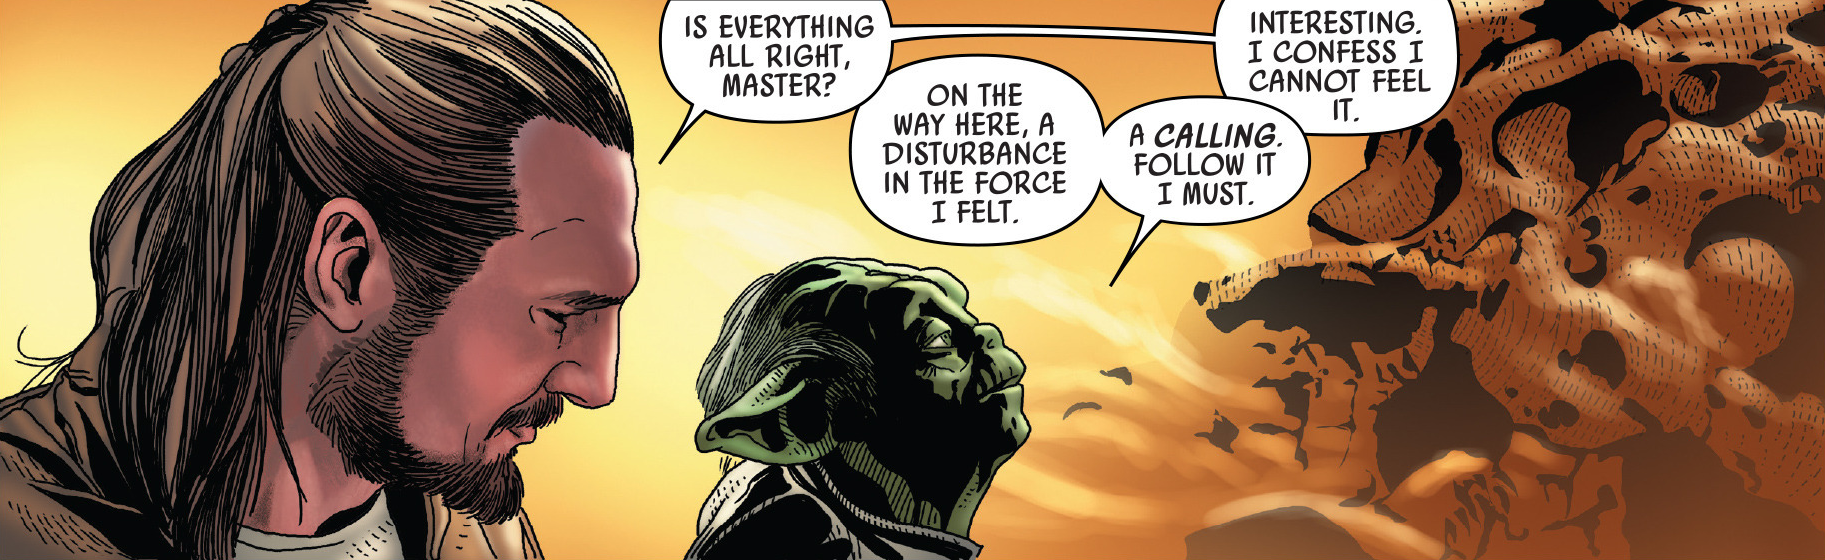 File:Yoda and qui gon.png